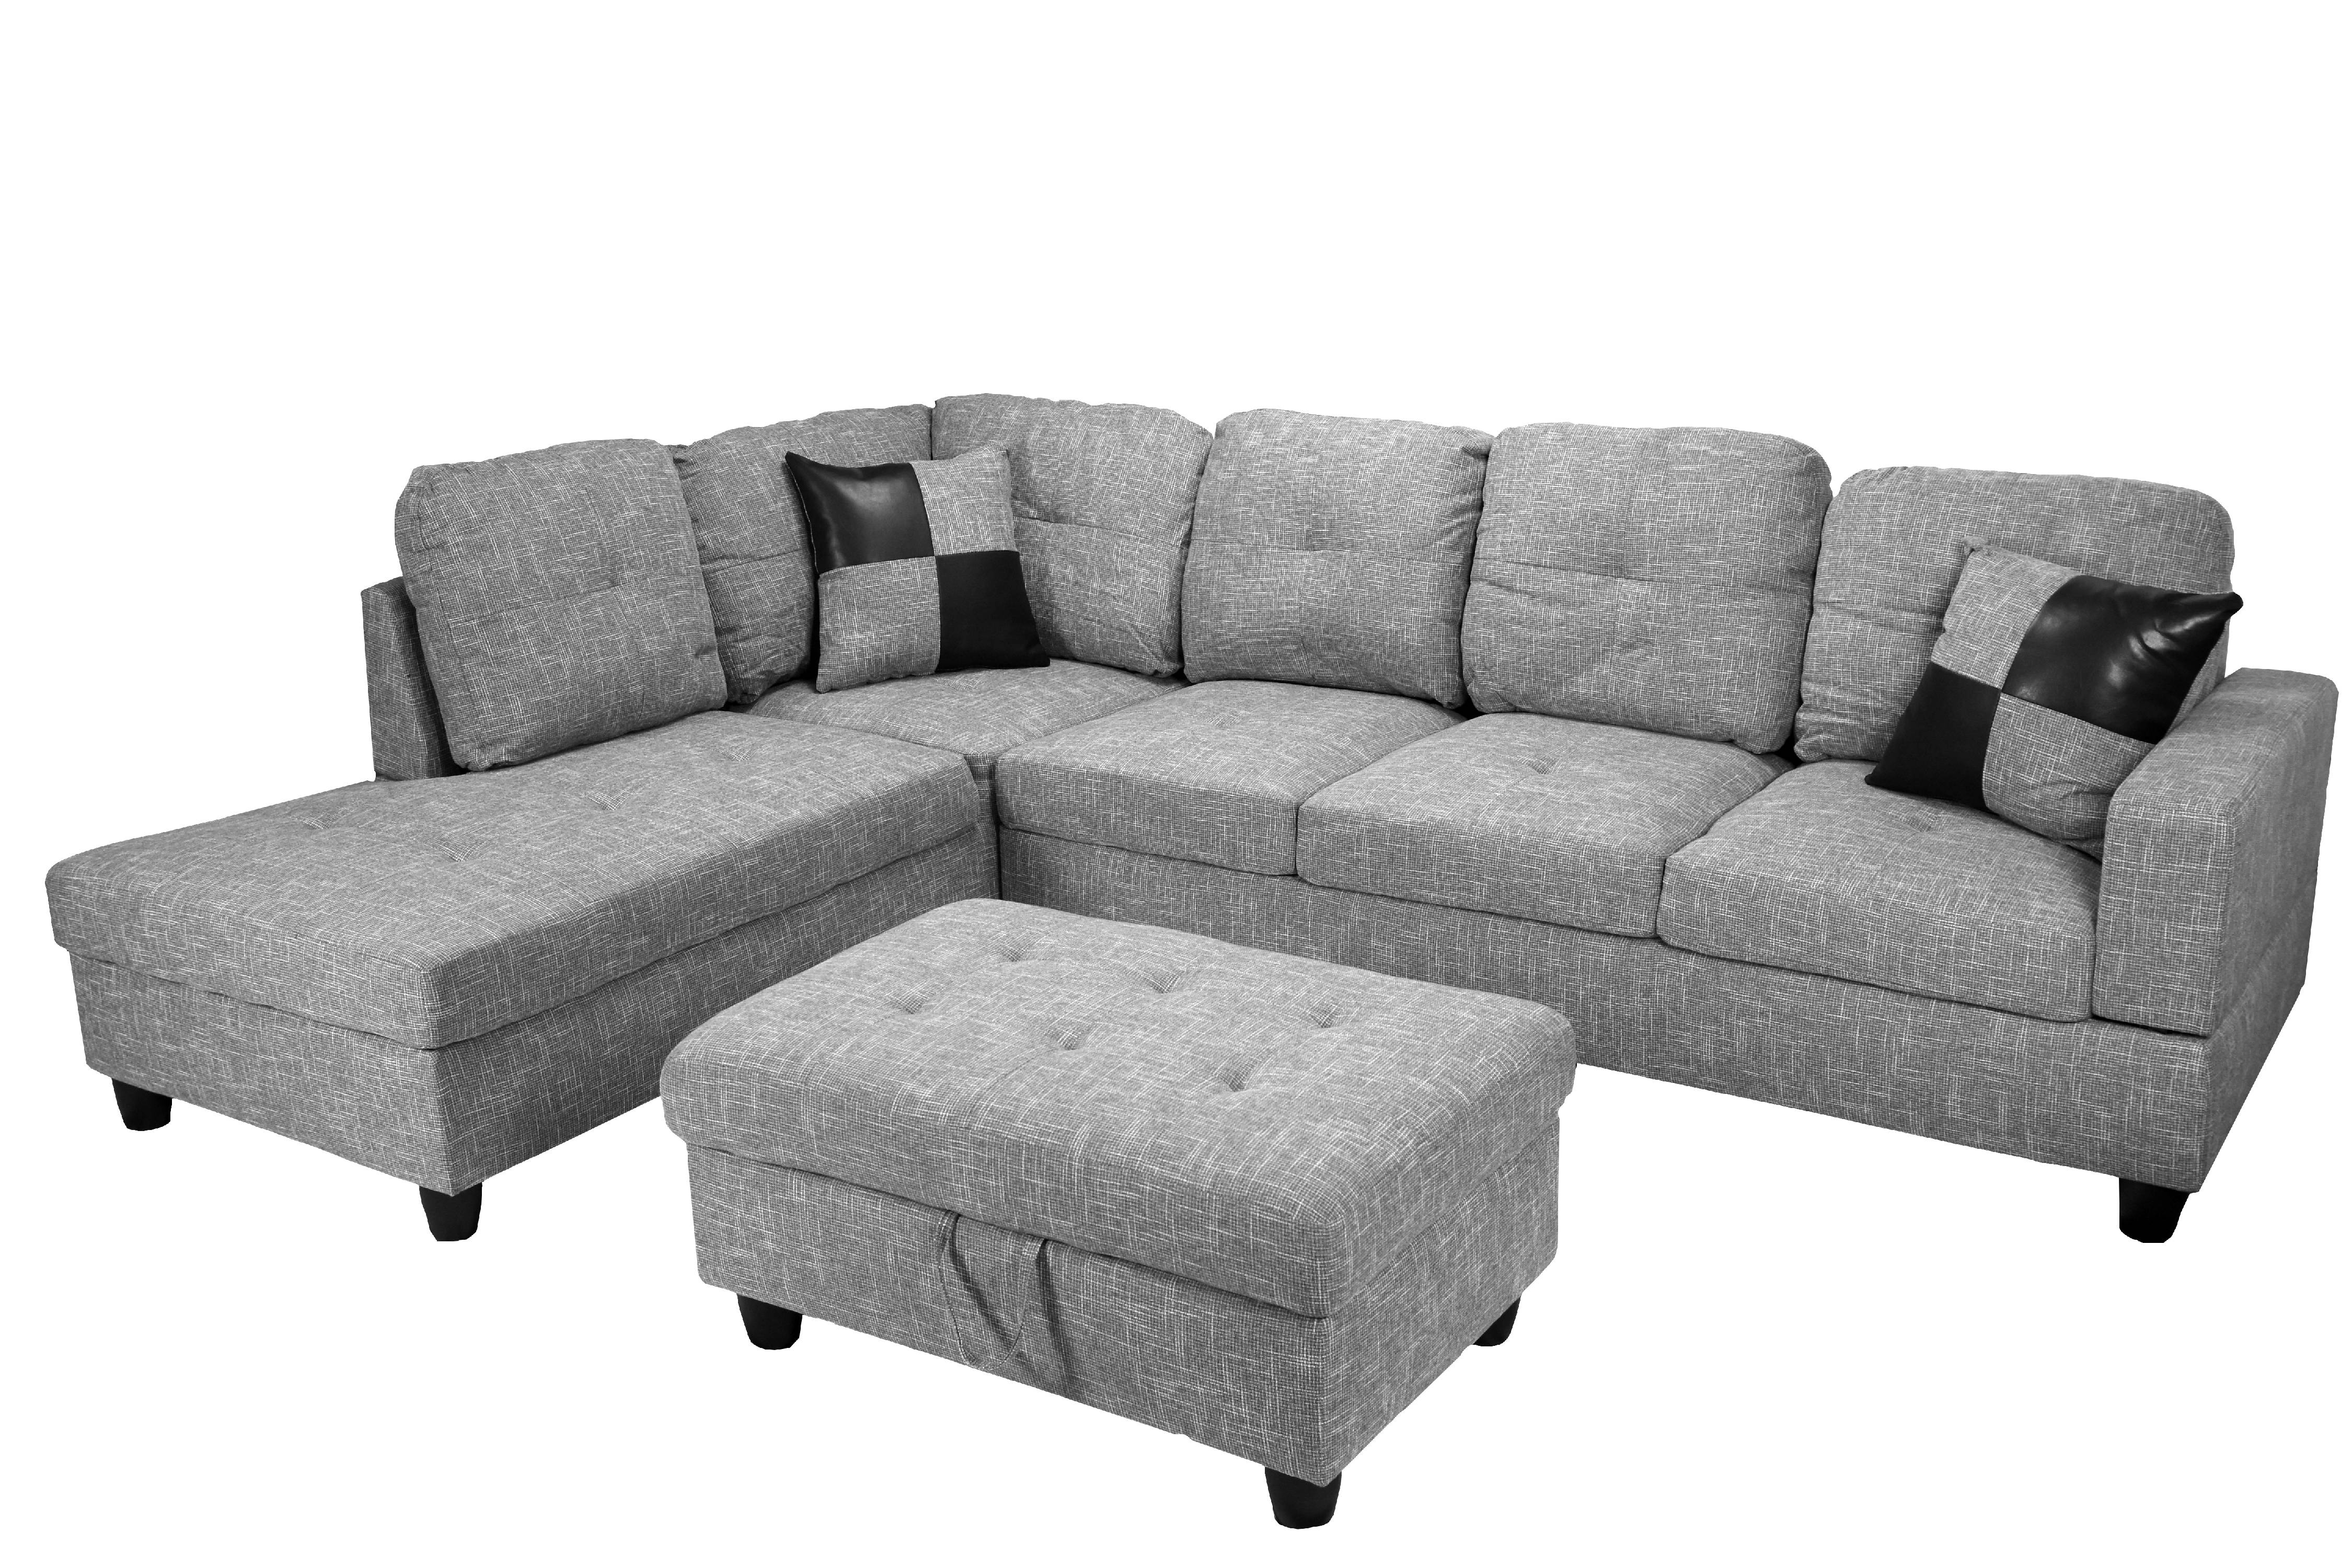 raphael sectional sofa left facing with ottoman multiple colors